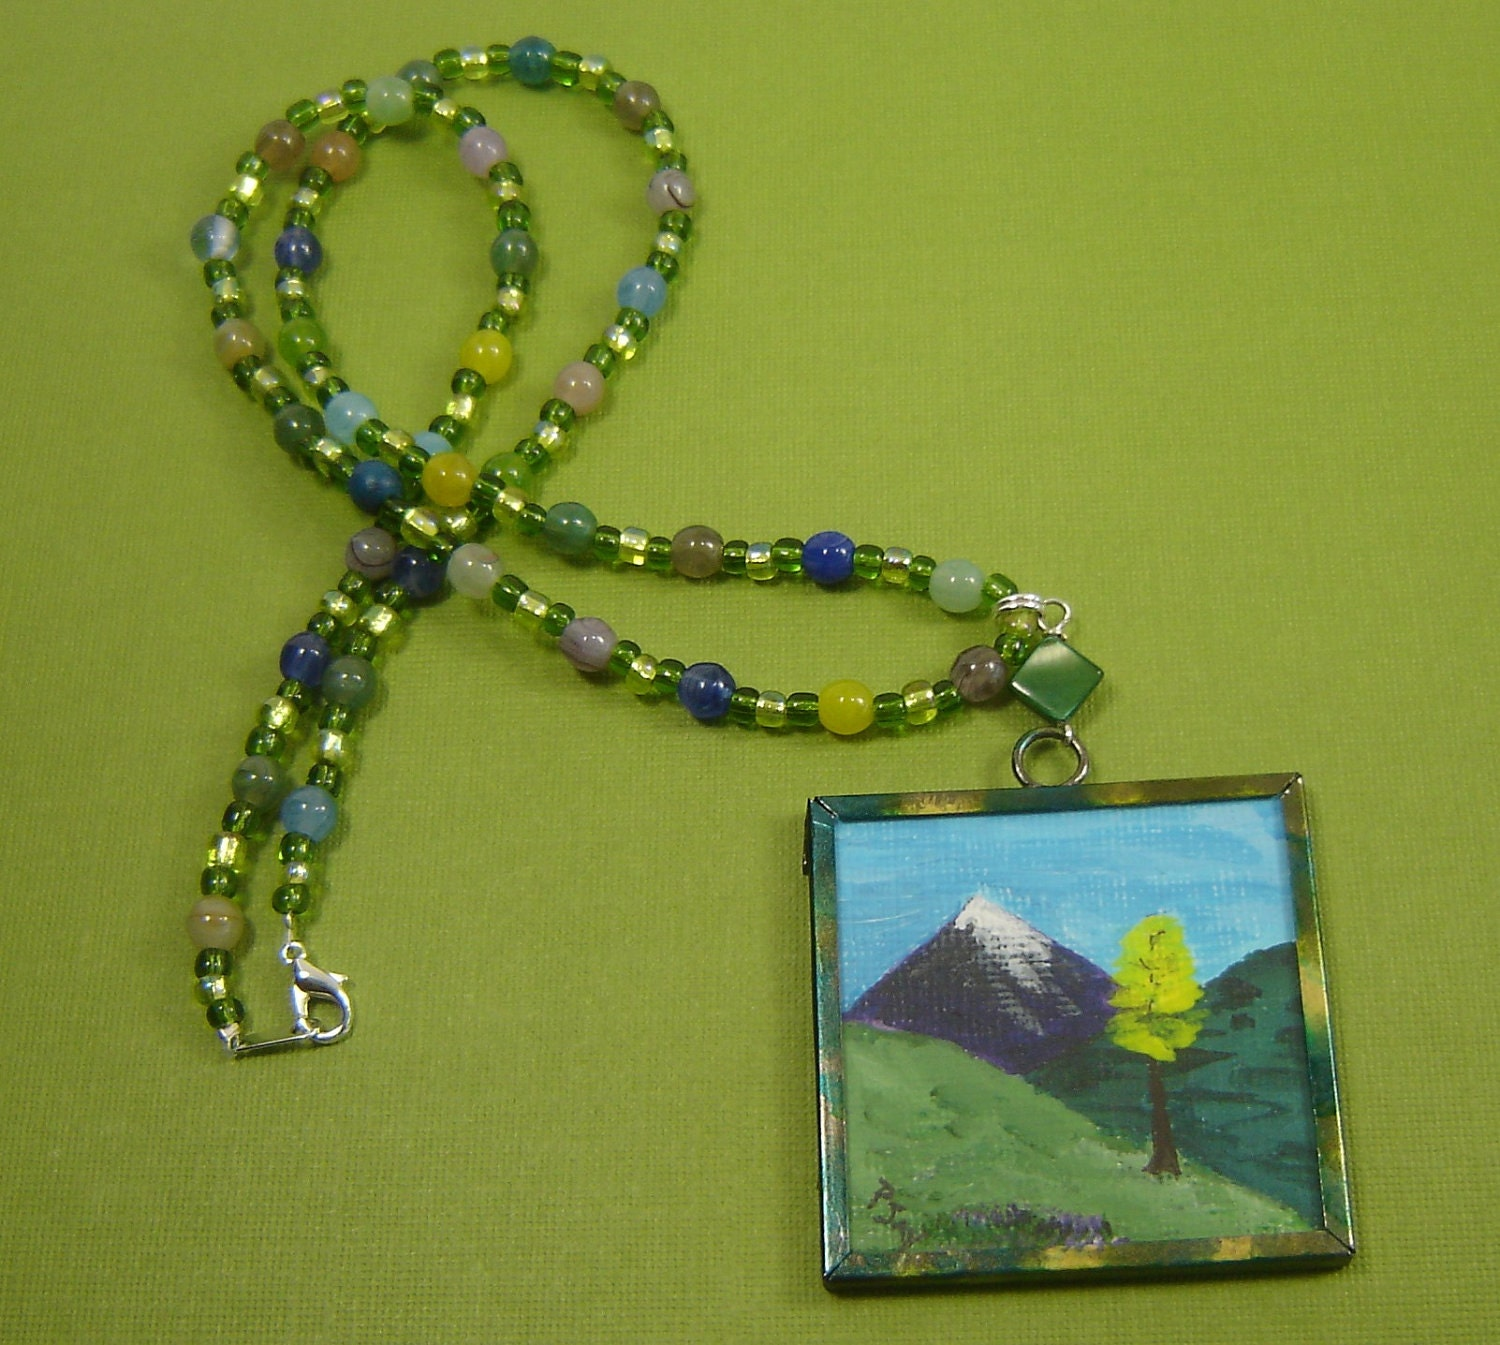 Mountain painting in metal frame necklace